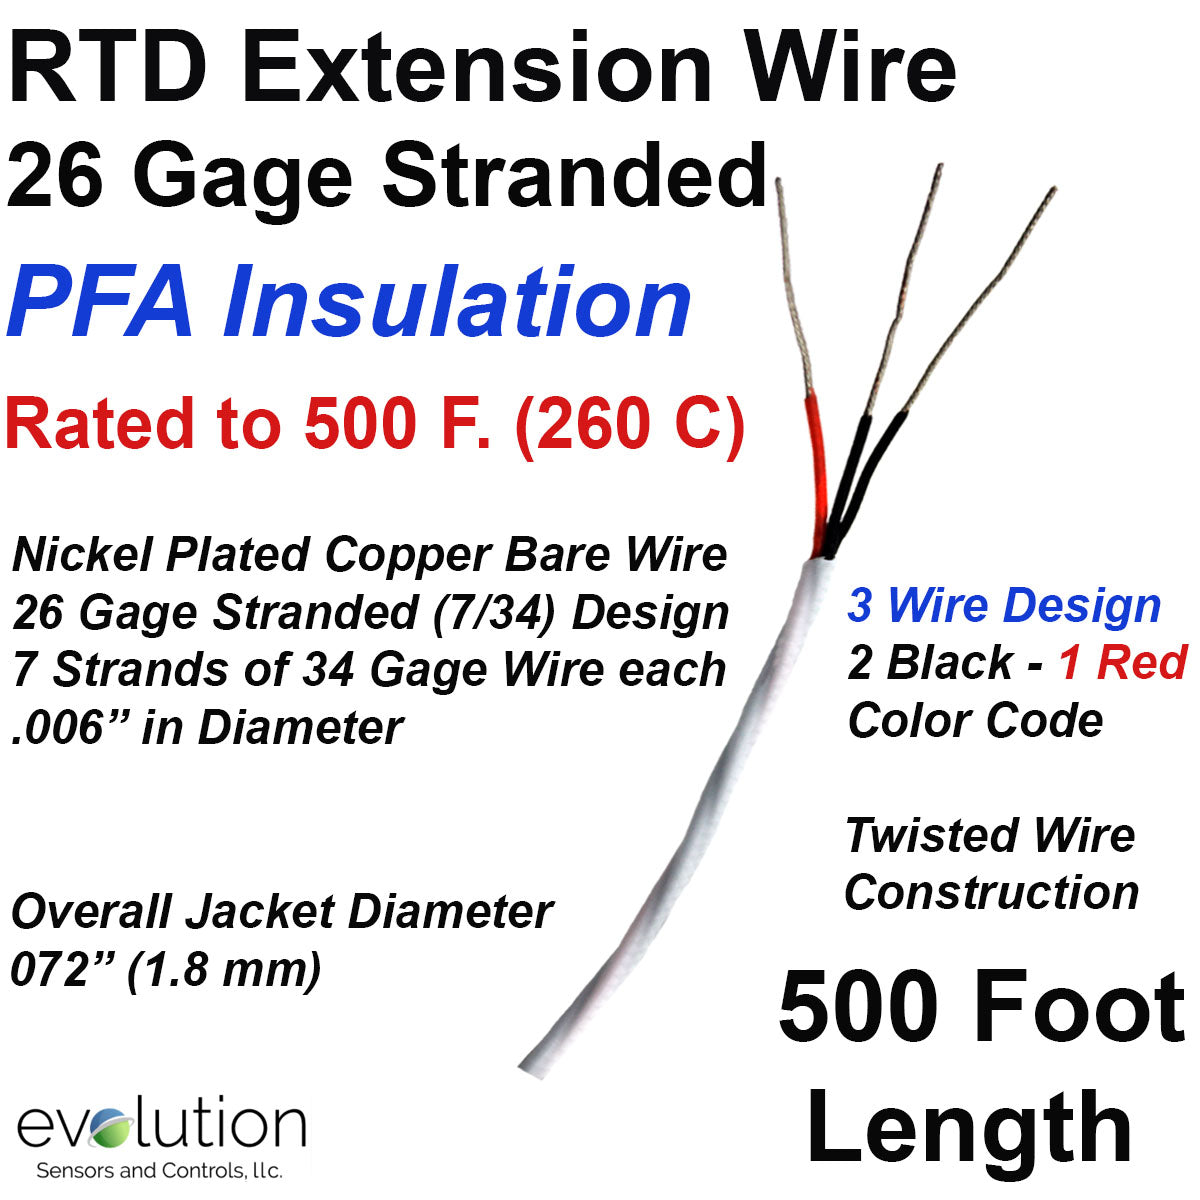 Rtd extension wire 500 foot length 26 gage stranded 3 wire design rtd extension wire 26 gage stranded 3 wire design pfa insulated 500 ft long keyboard keysfo Images